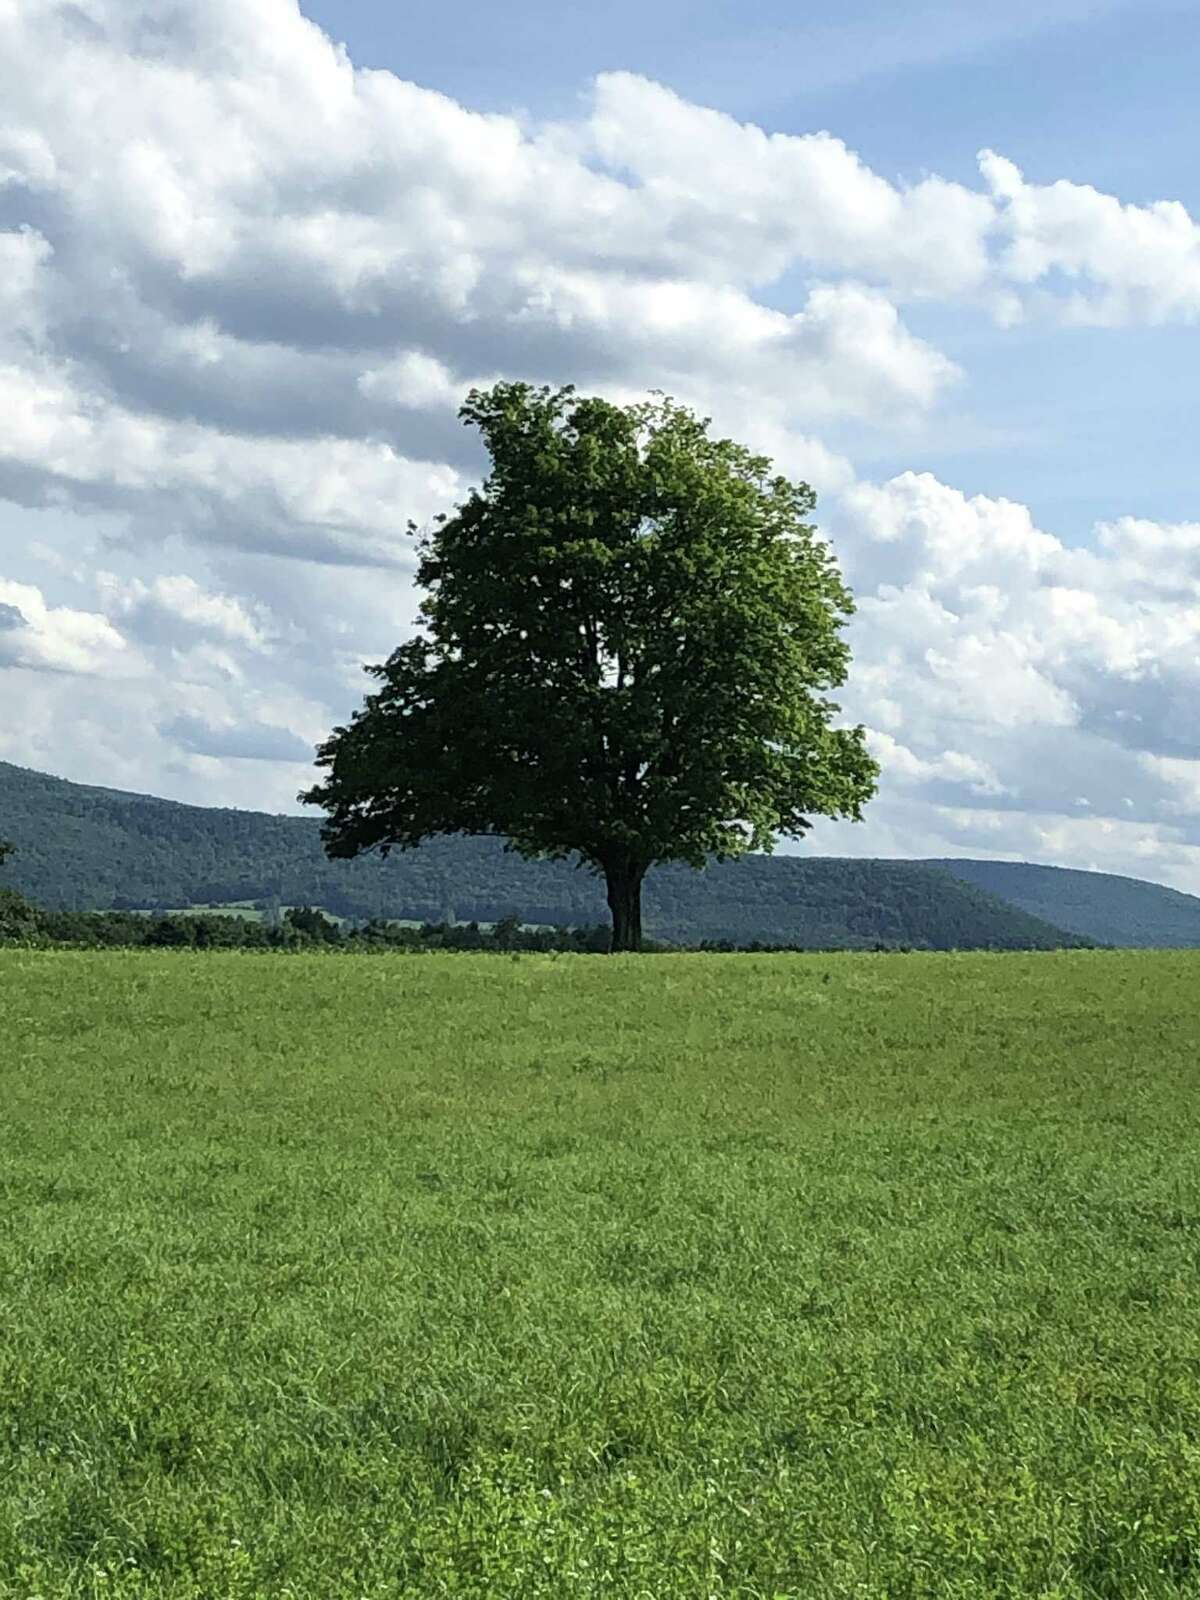 From Marie Hallock of Colonie: This is a shot called 'The Tree' in Schoharie.